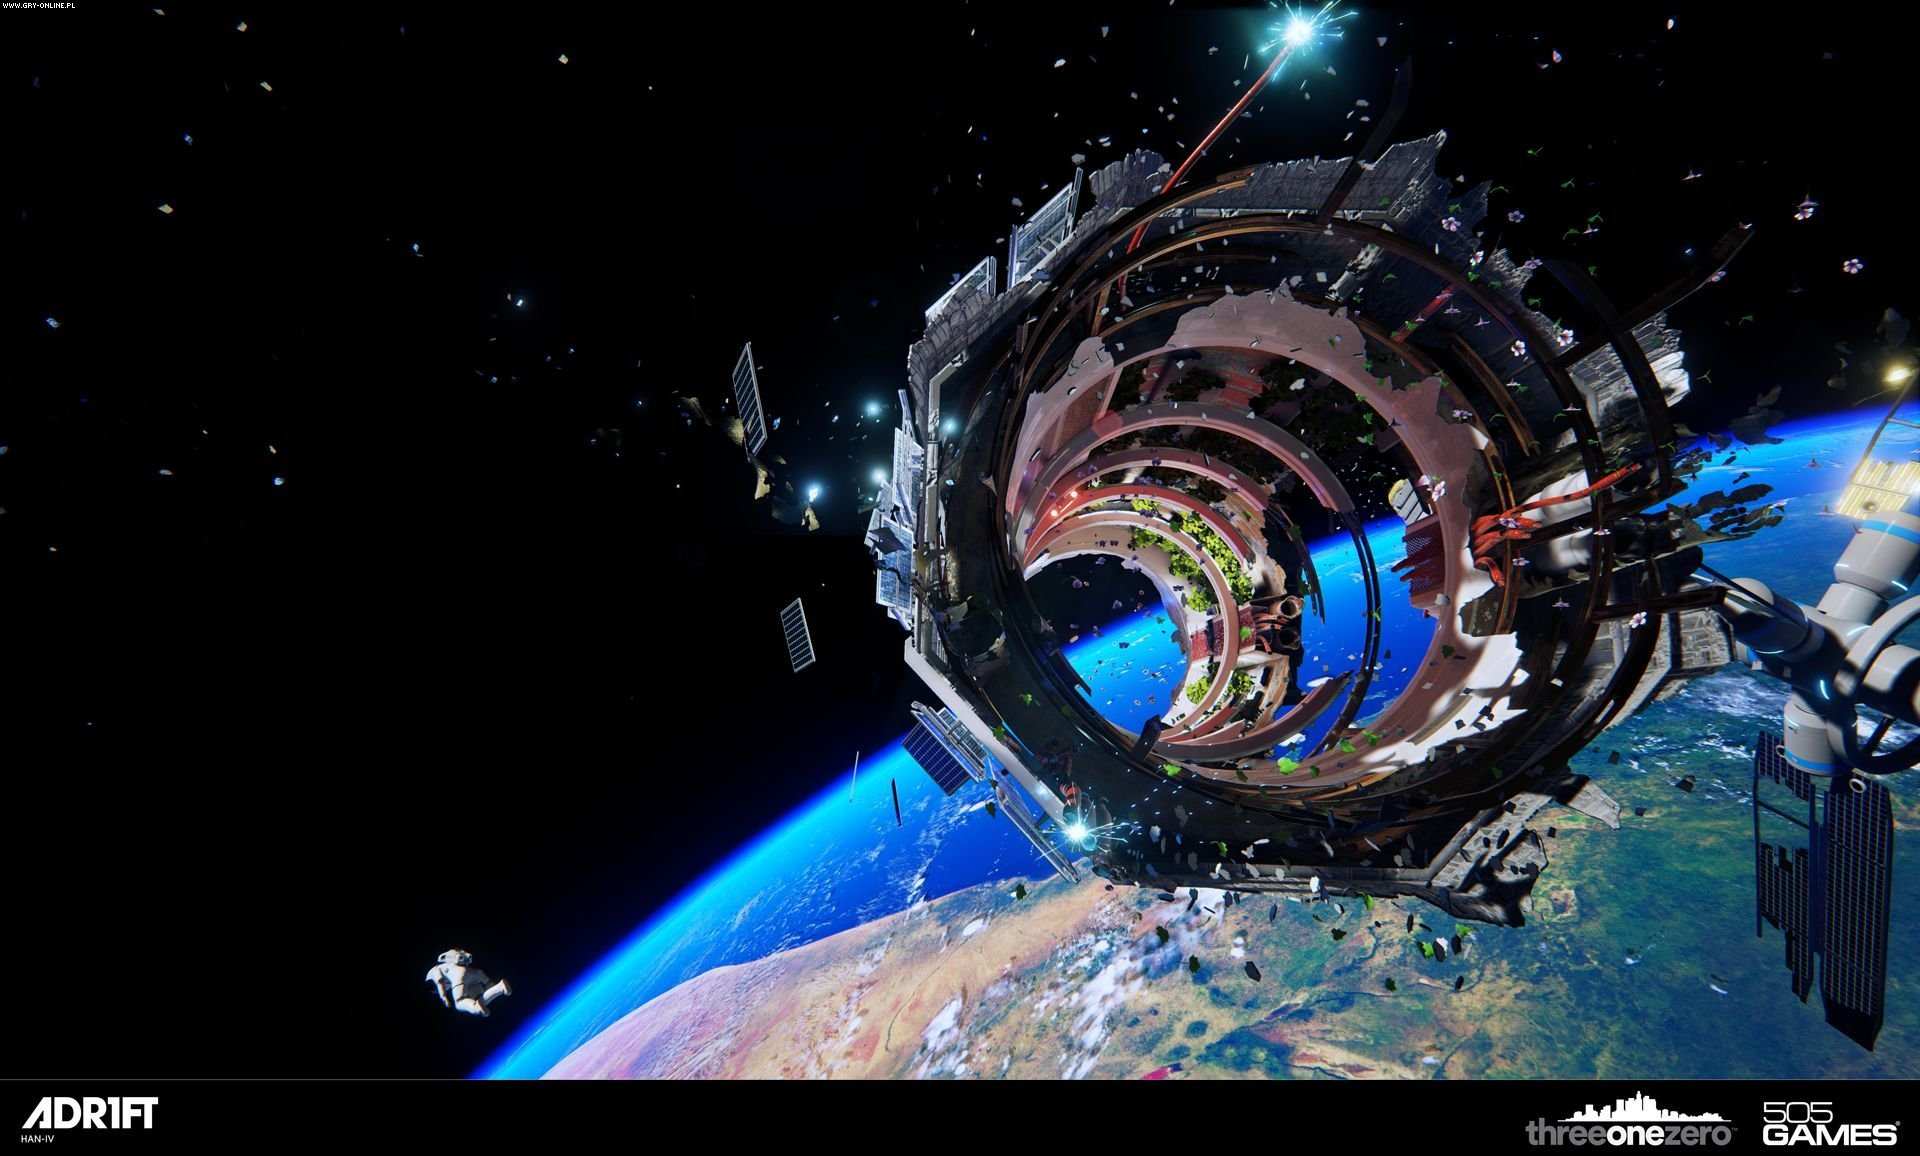 Adr1ft PC, PS4, XONE Gry Screen 11/22, Three One Zero, 505 Games